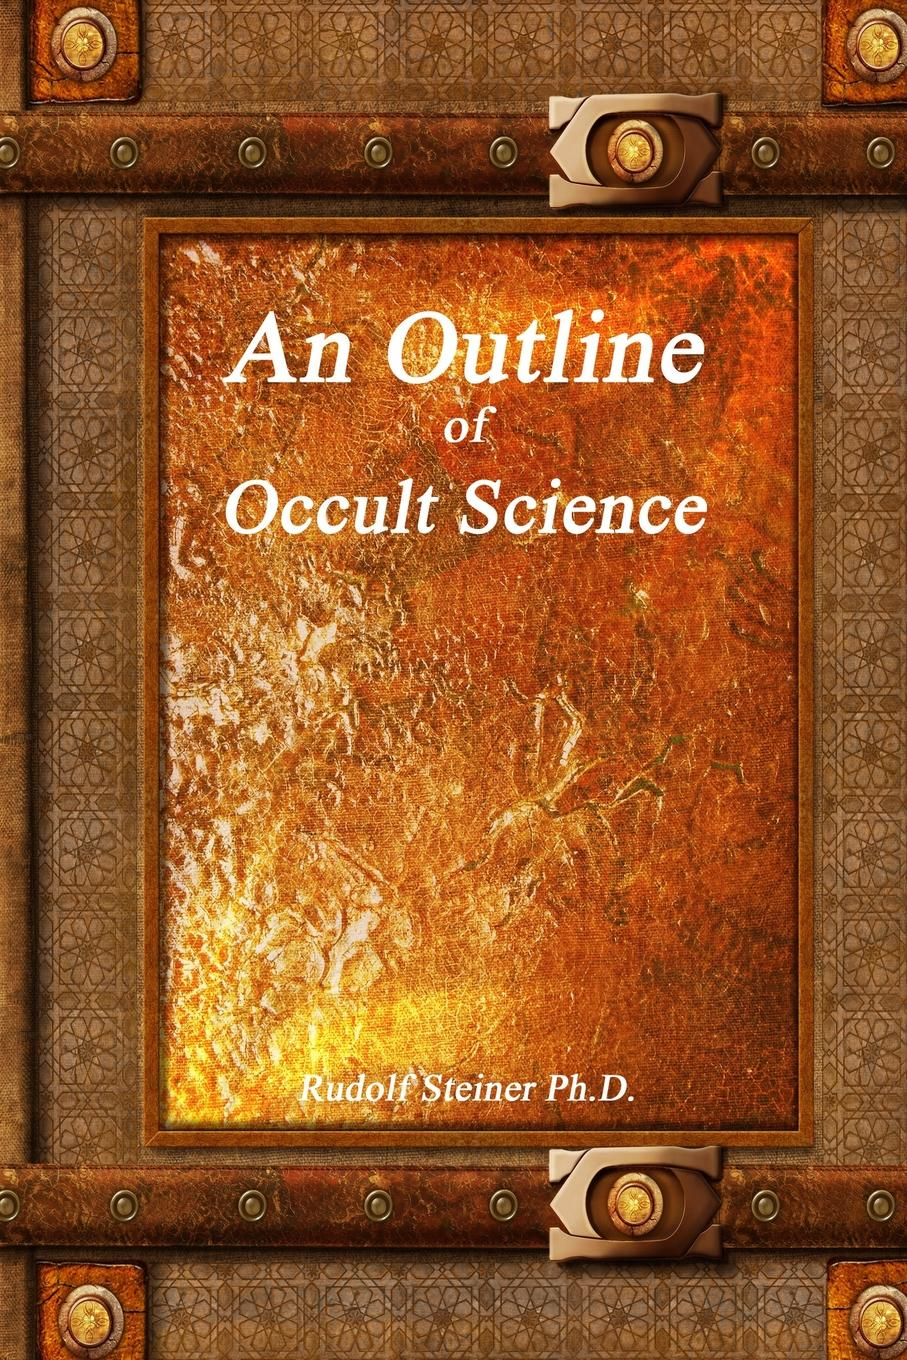 Ph.D. Rudolf Steiner An Outline of Occult Science bernard dugué information and the world stage from philosophy to science the world of forms and communications